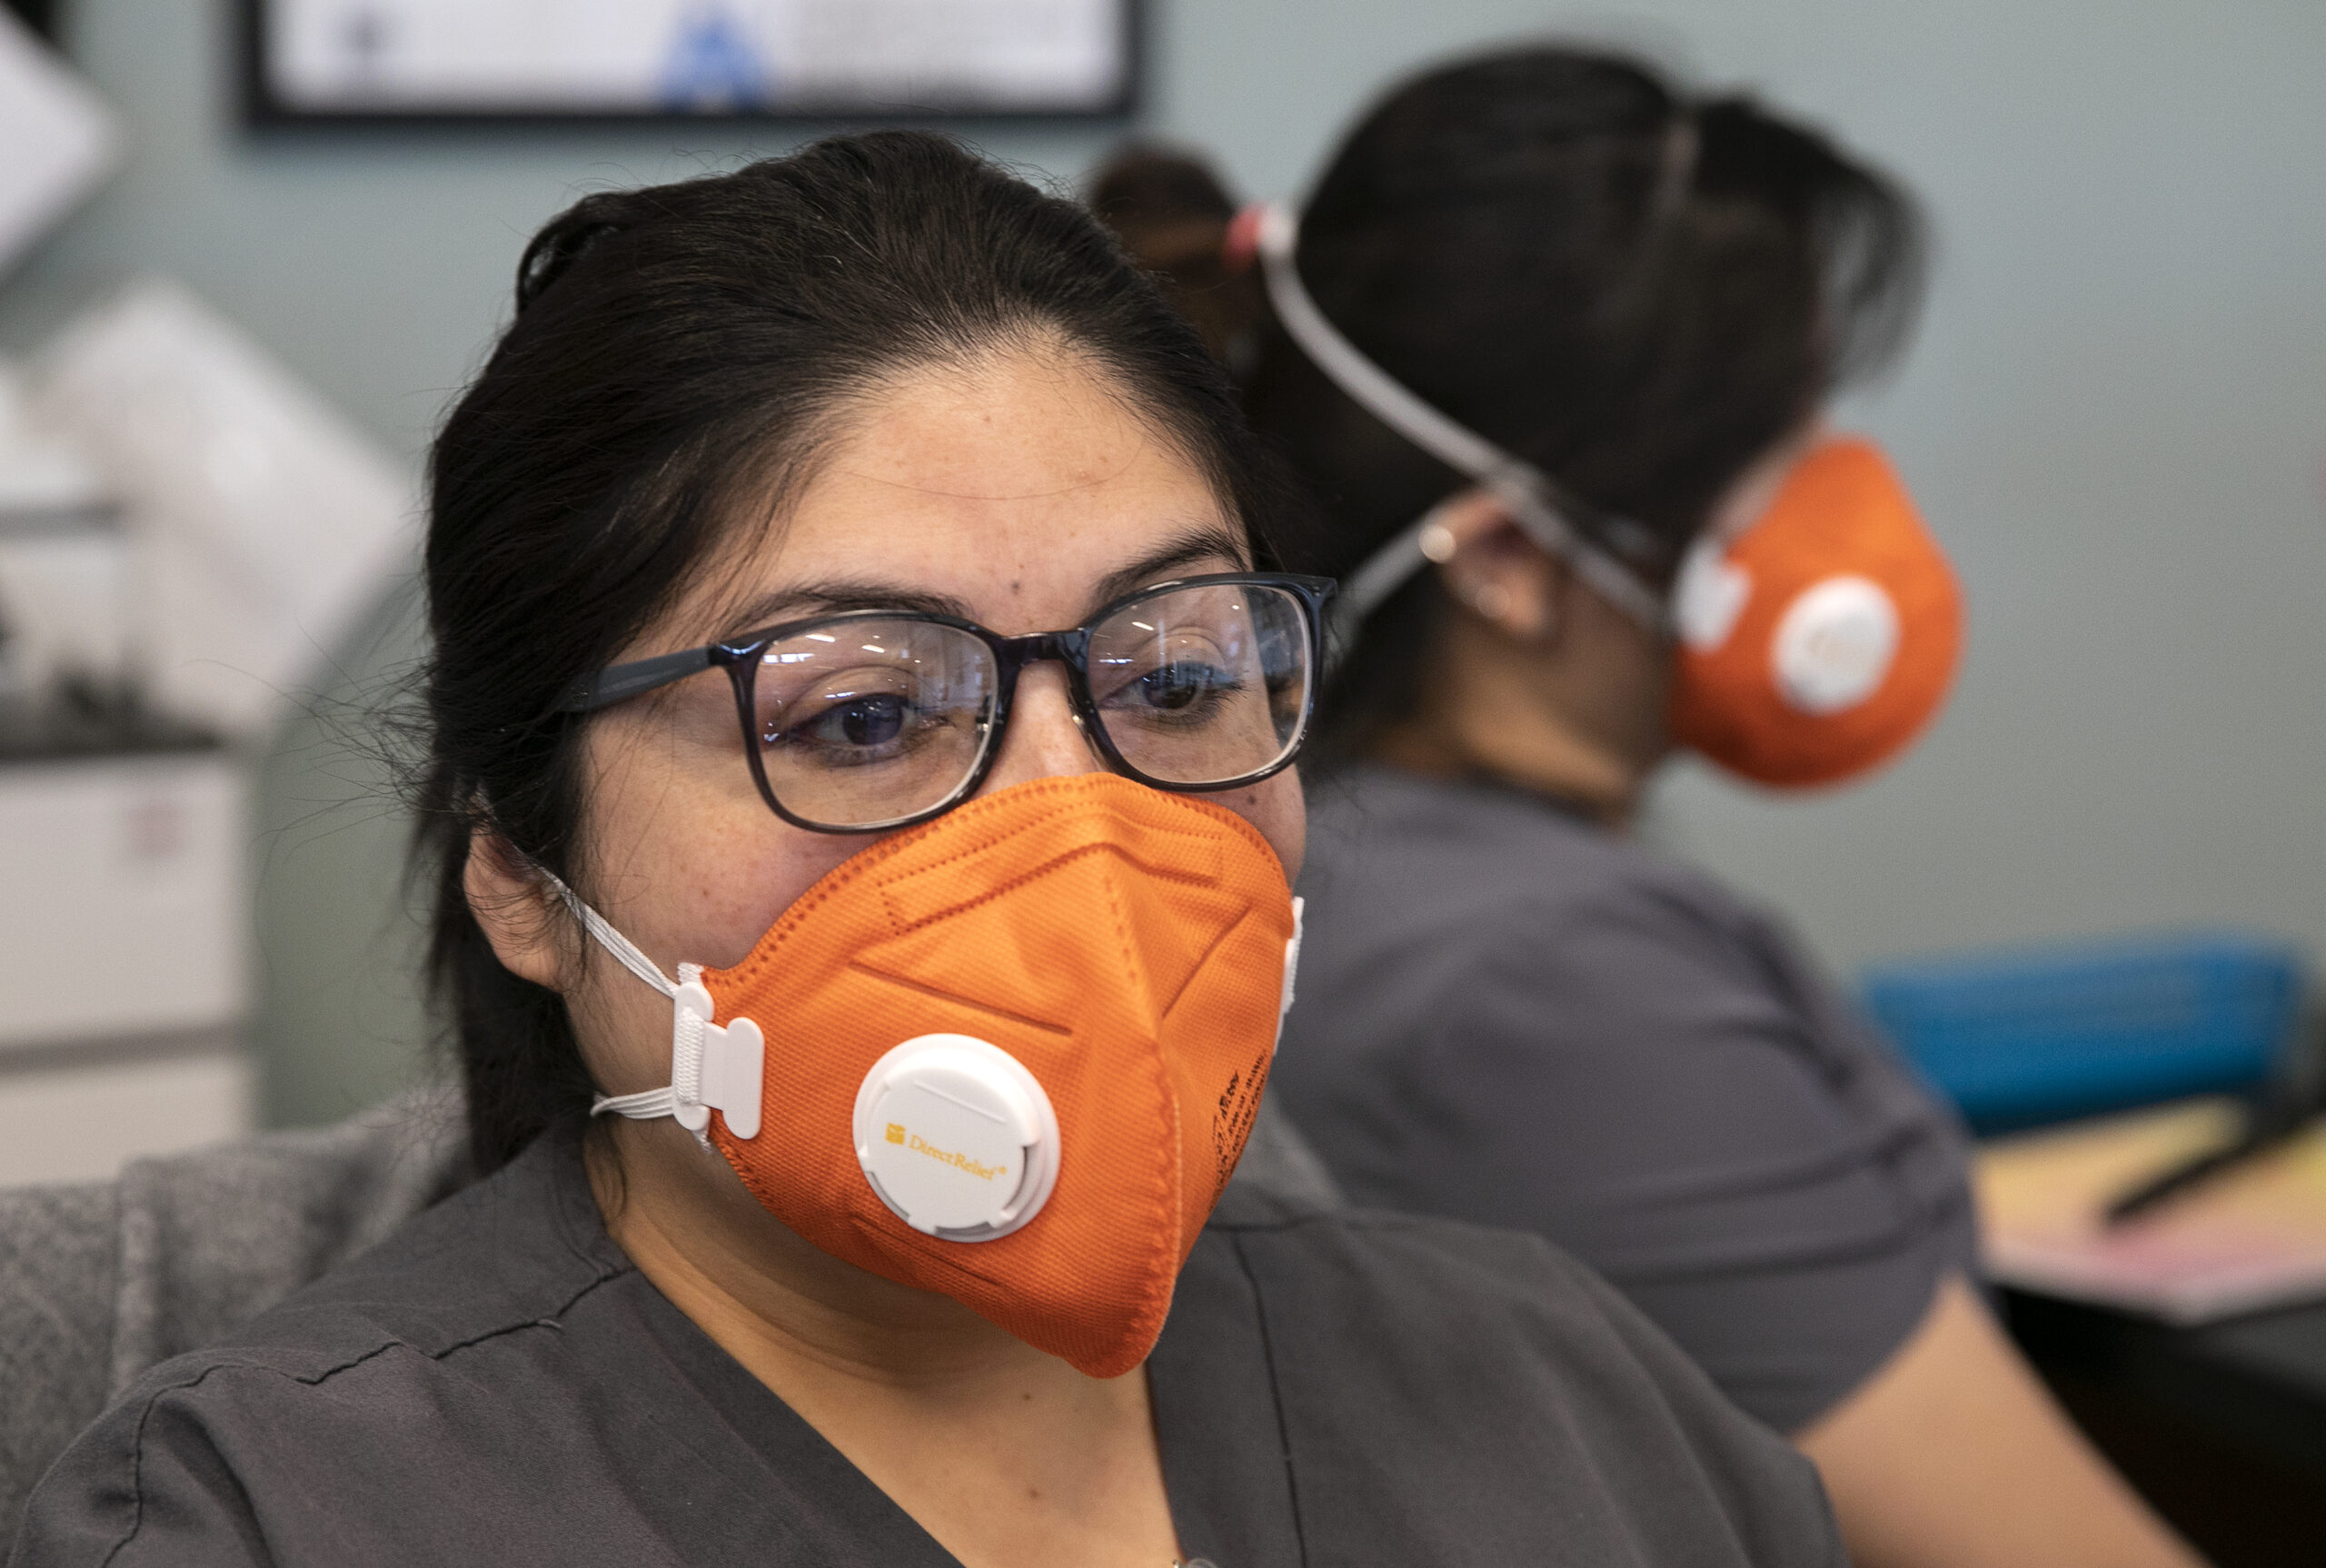 San Jose, California, United States: Health Workers wear N95 masks while manning the front desk at the Foothill Community Health Center during the coronavirus outbreak. (LiPo Ching / San Francisco Chronicle / Polaris)